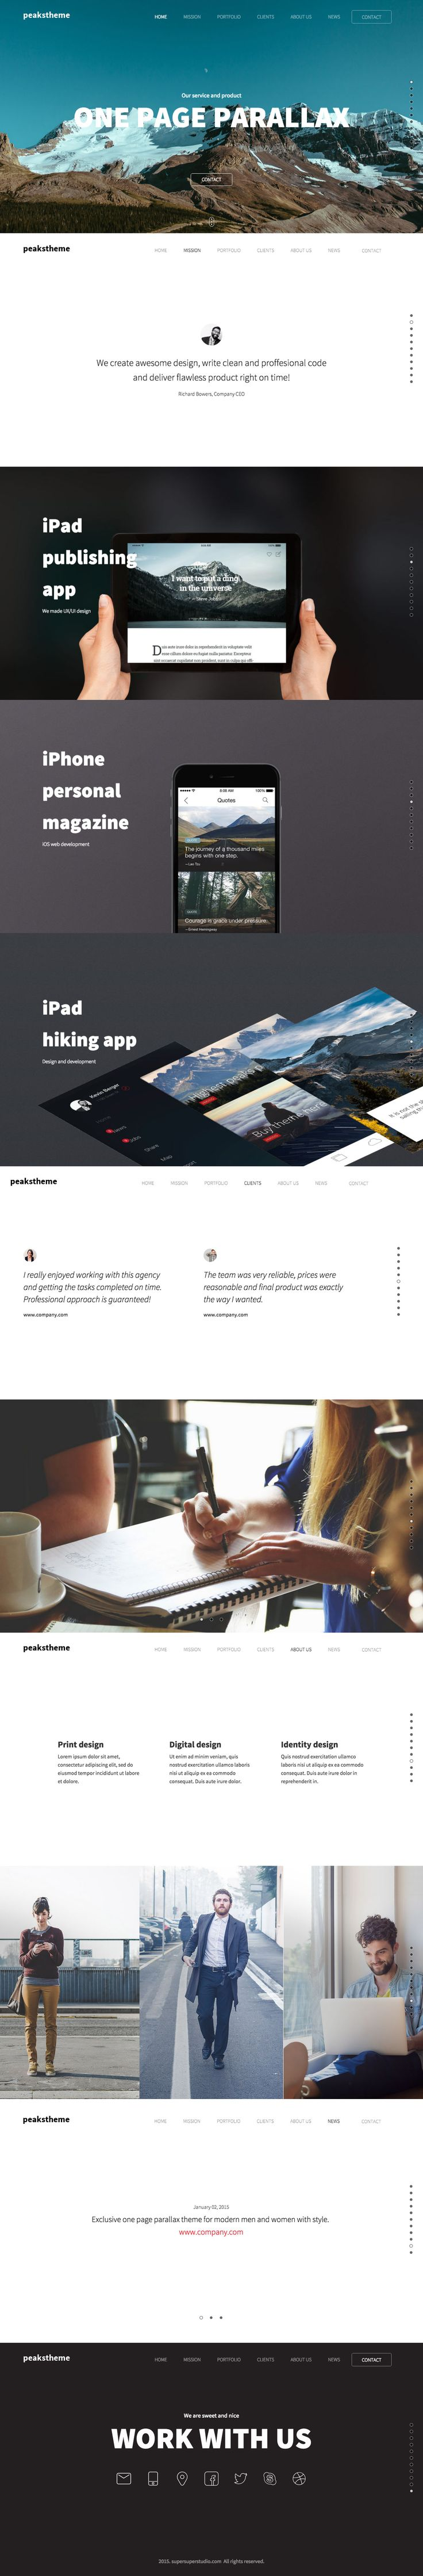 Elegant  uPeaks u is a One Page HTML template featuring a full screen layout with a